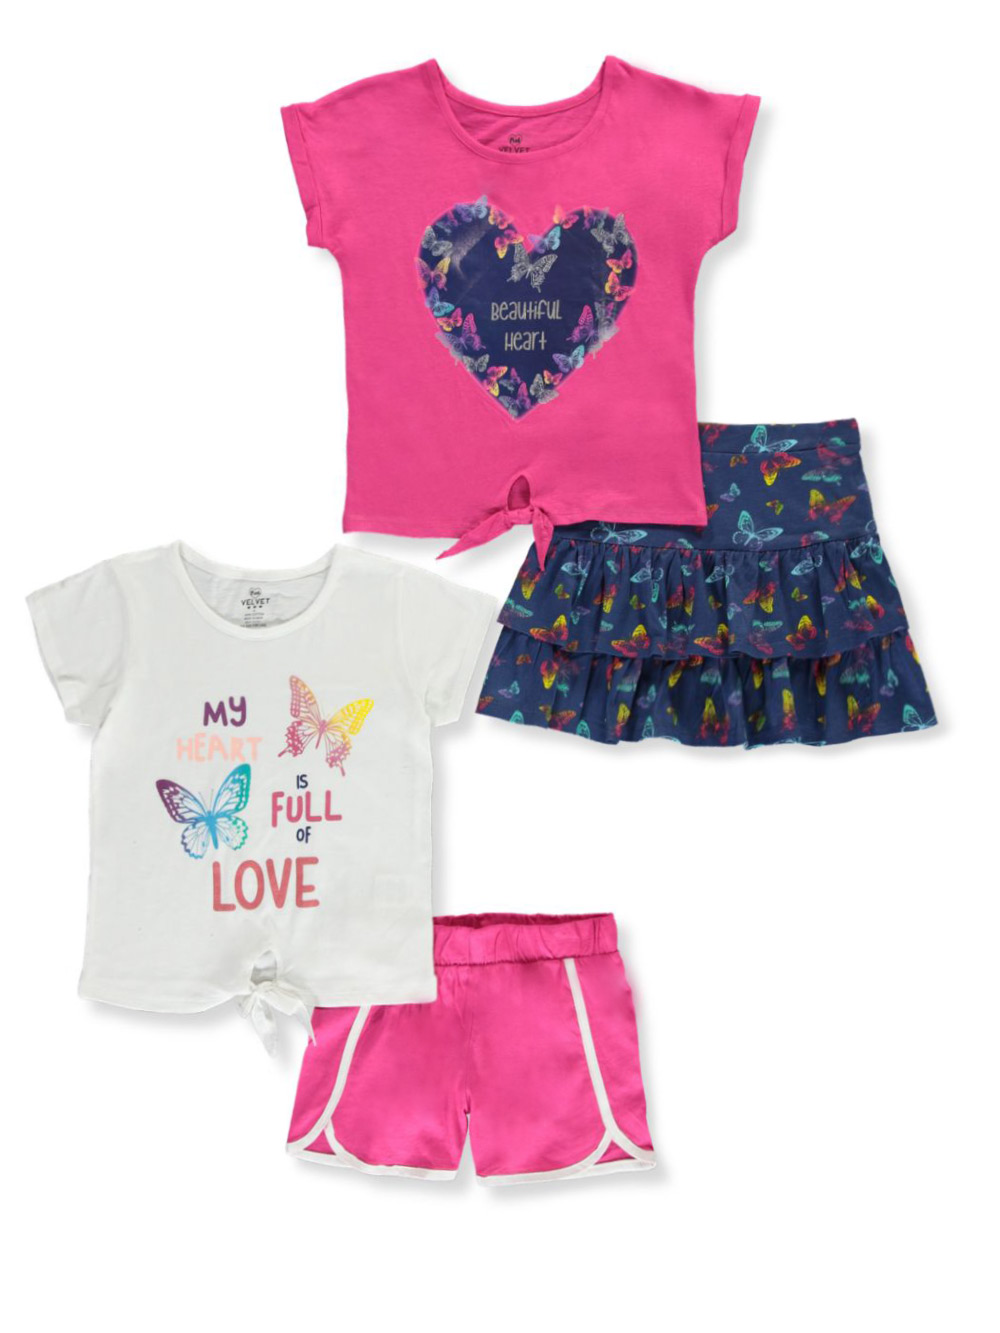 RMLA Girls Butterfly Dress and Sunglasses 2-Piece Outfit